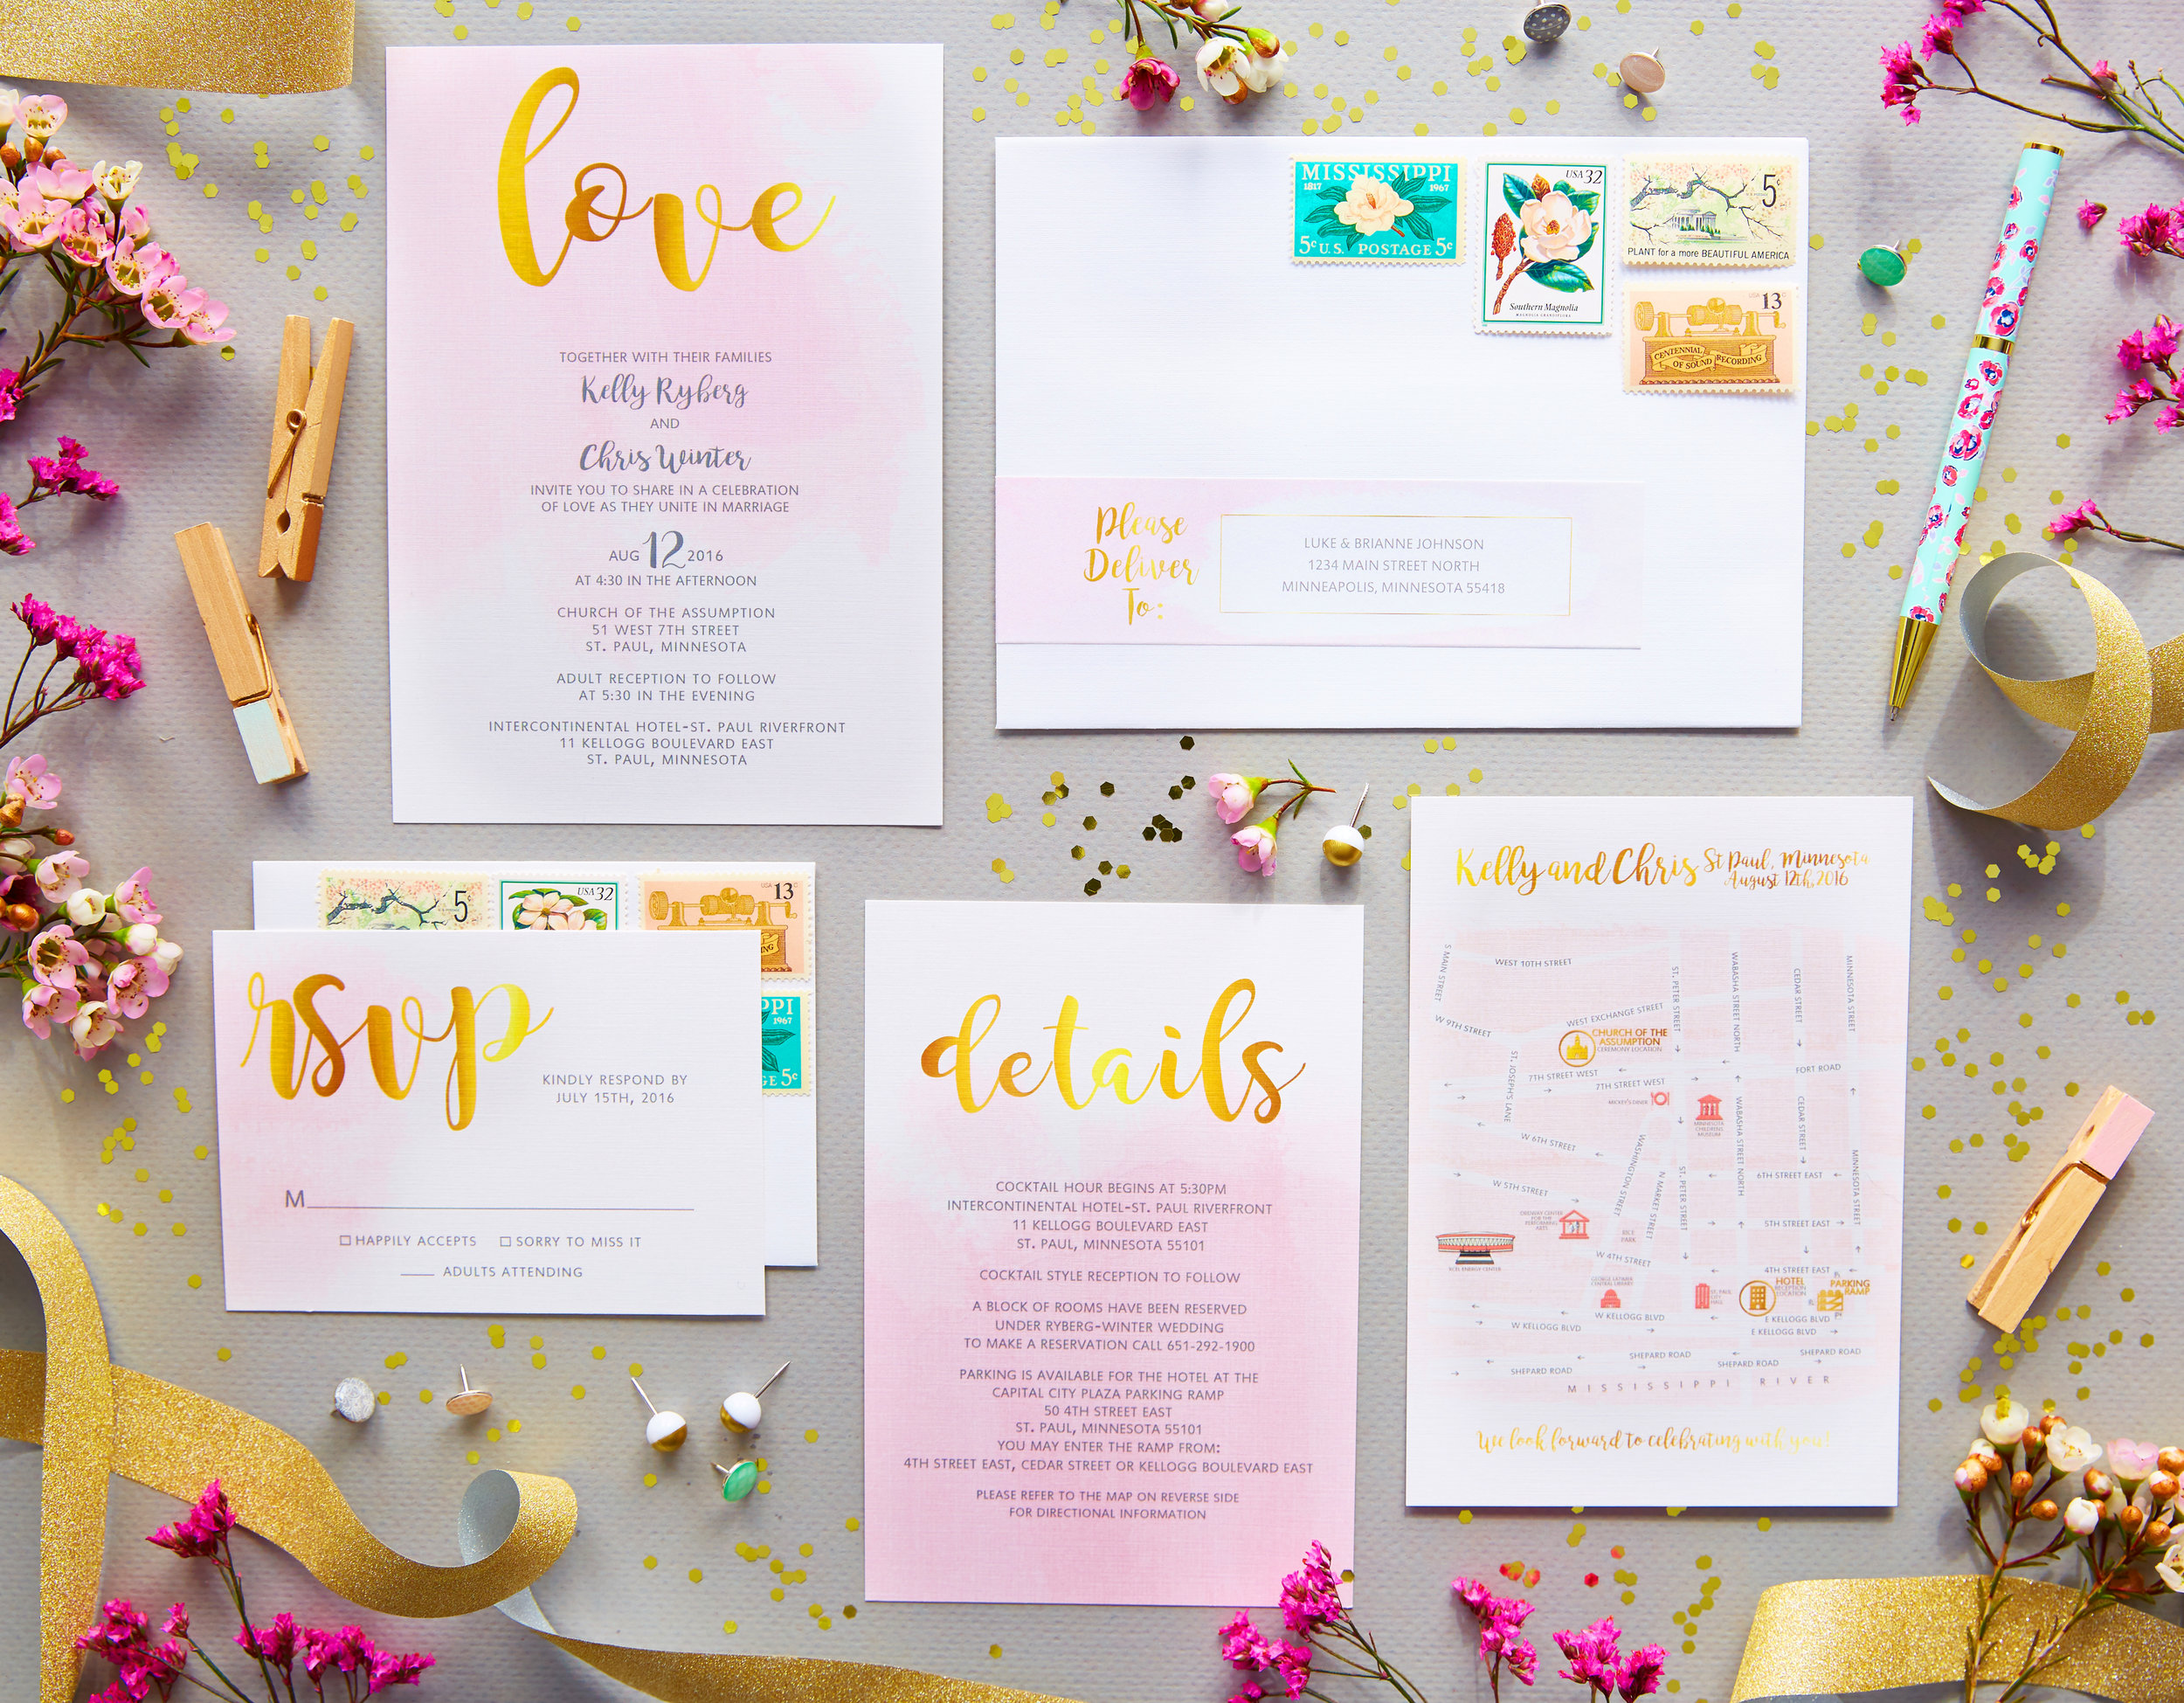 watercolor_custom_invitation_wedding_huntwrightdesignco.jpg